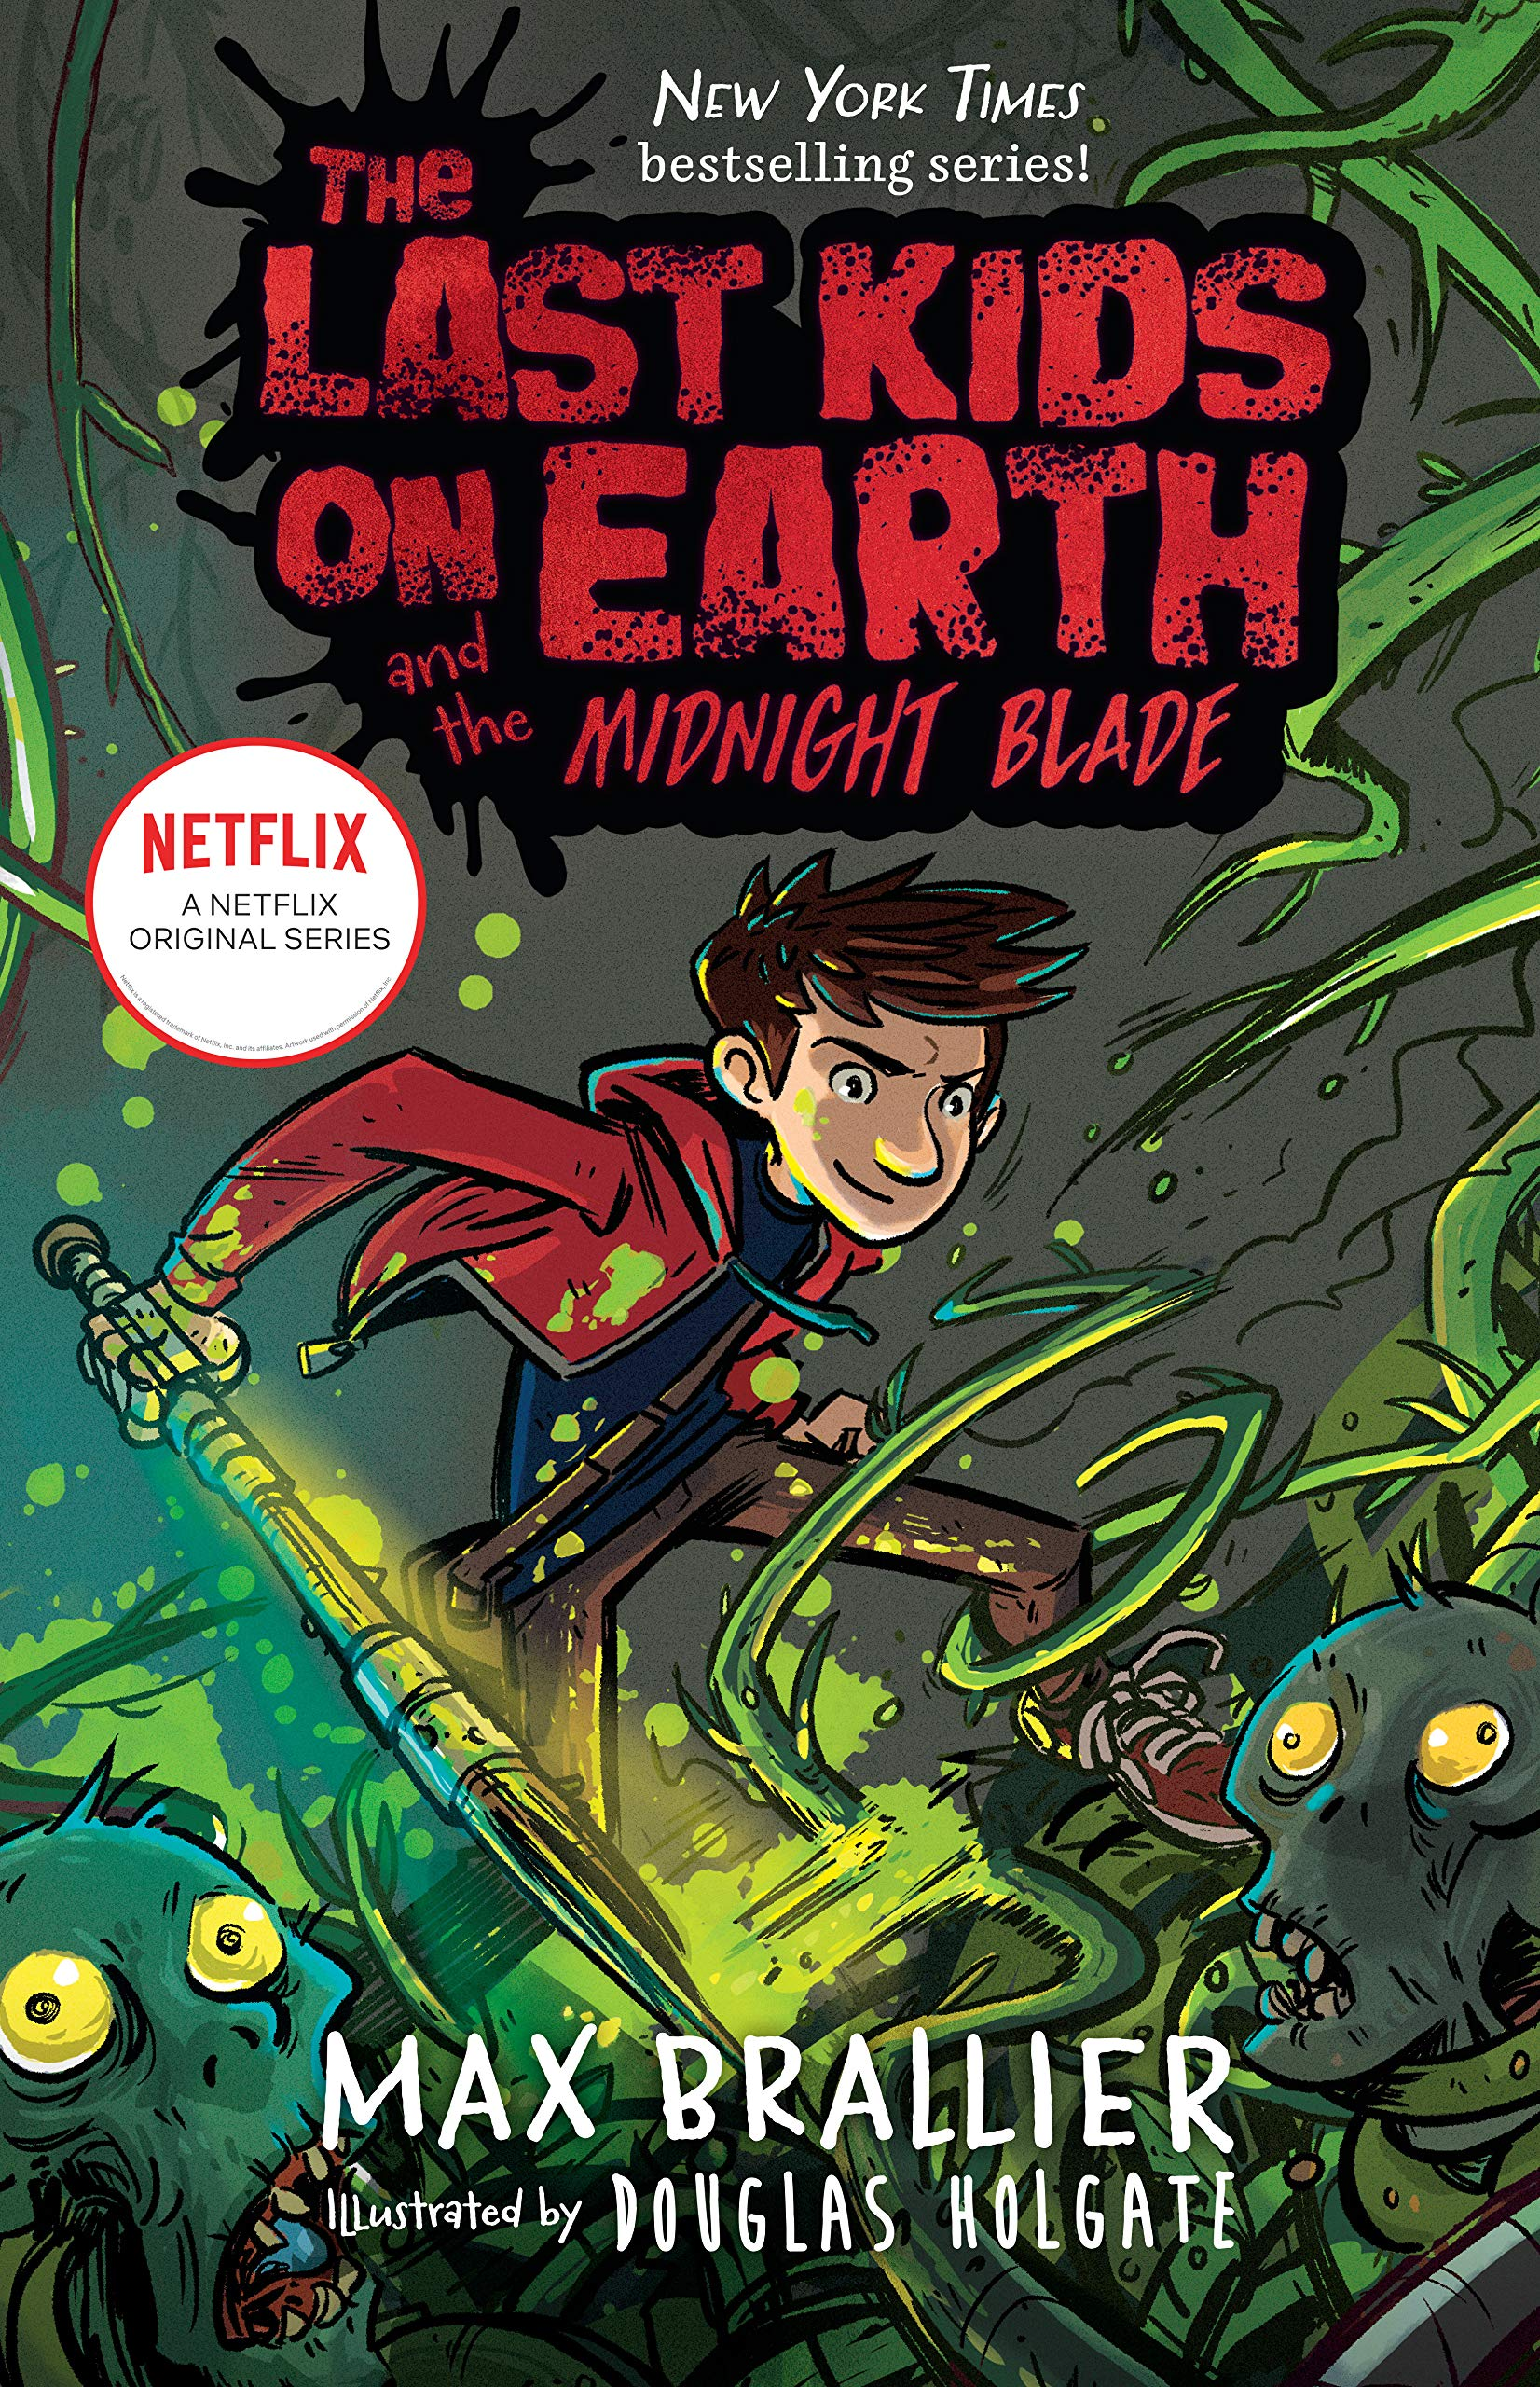 Viking Books for Young Readers (September 17, 2019)